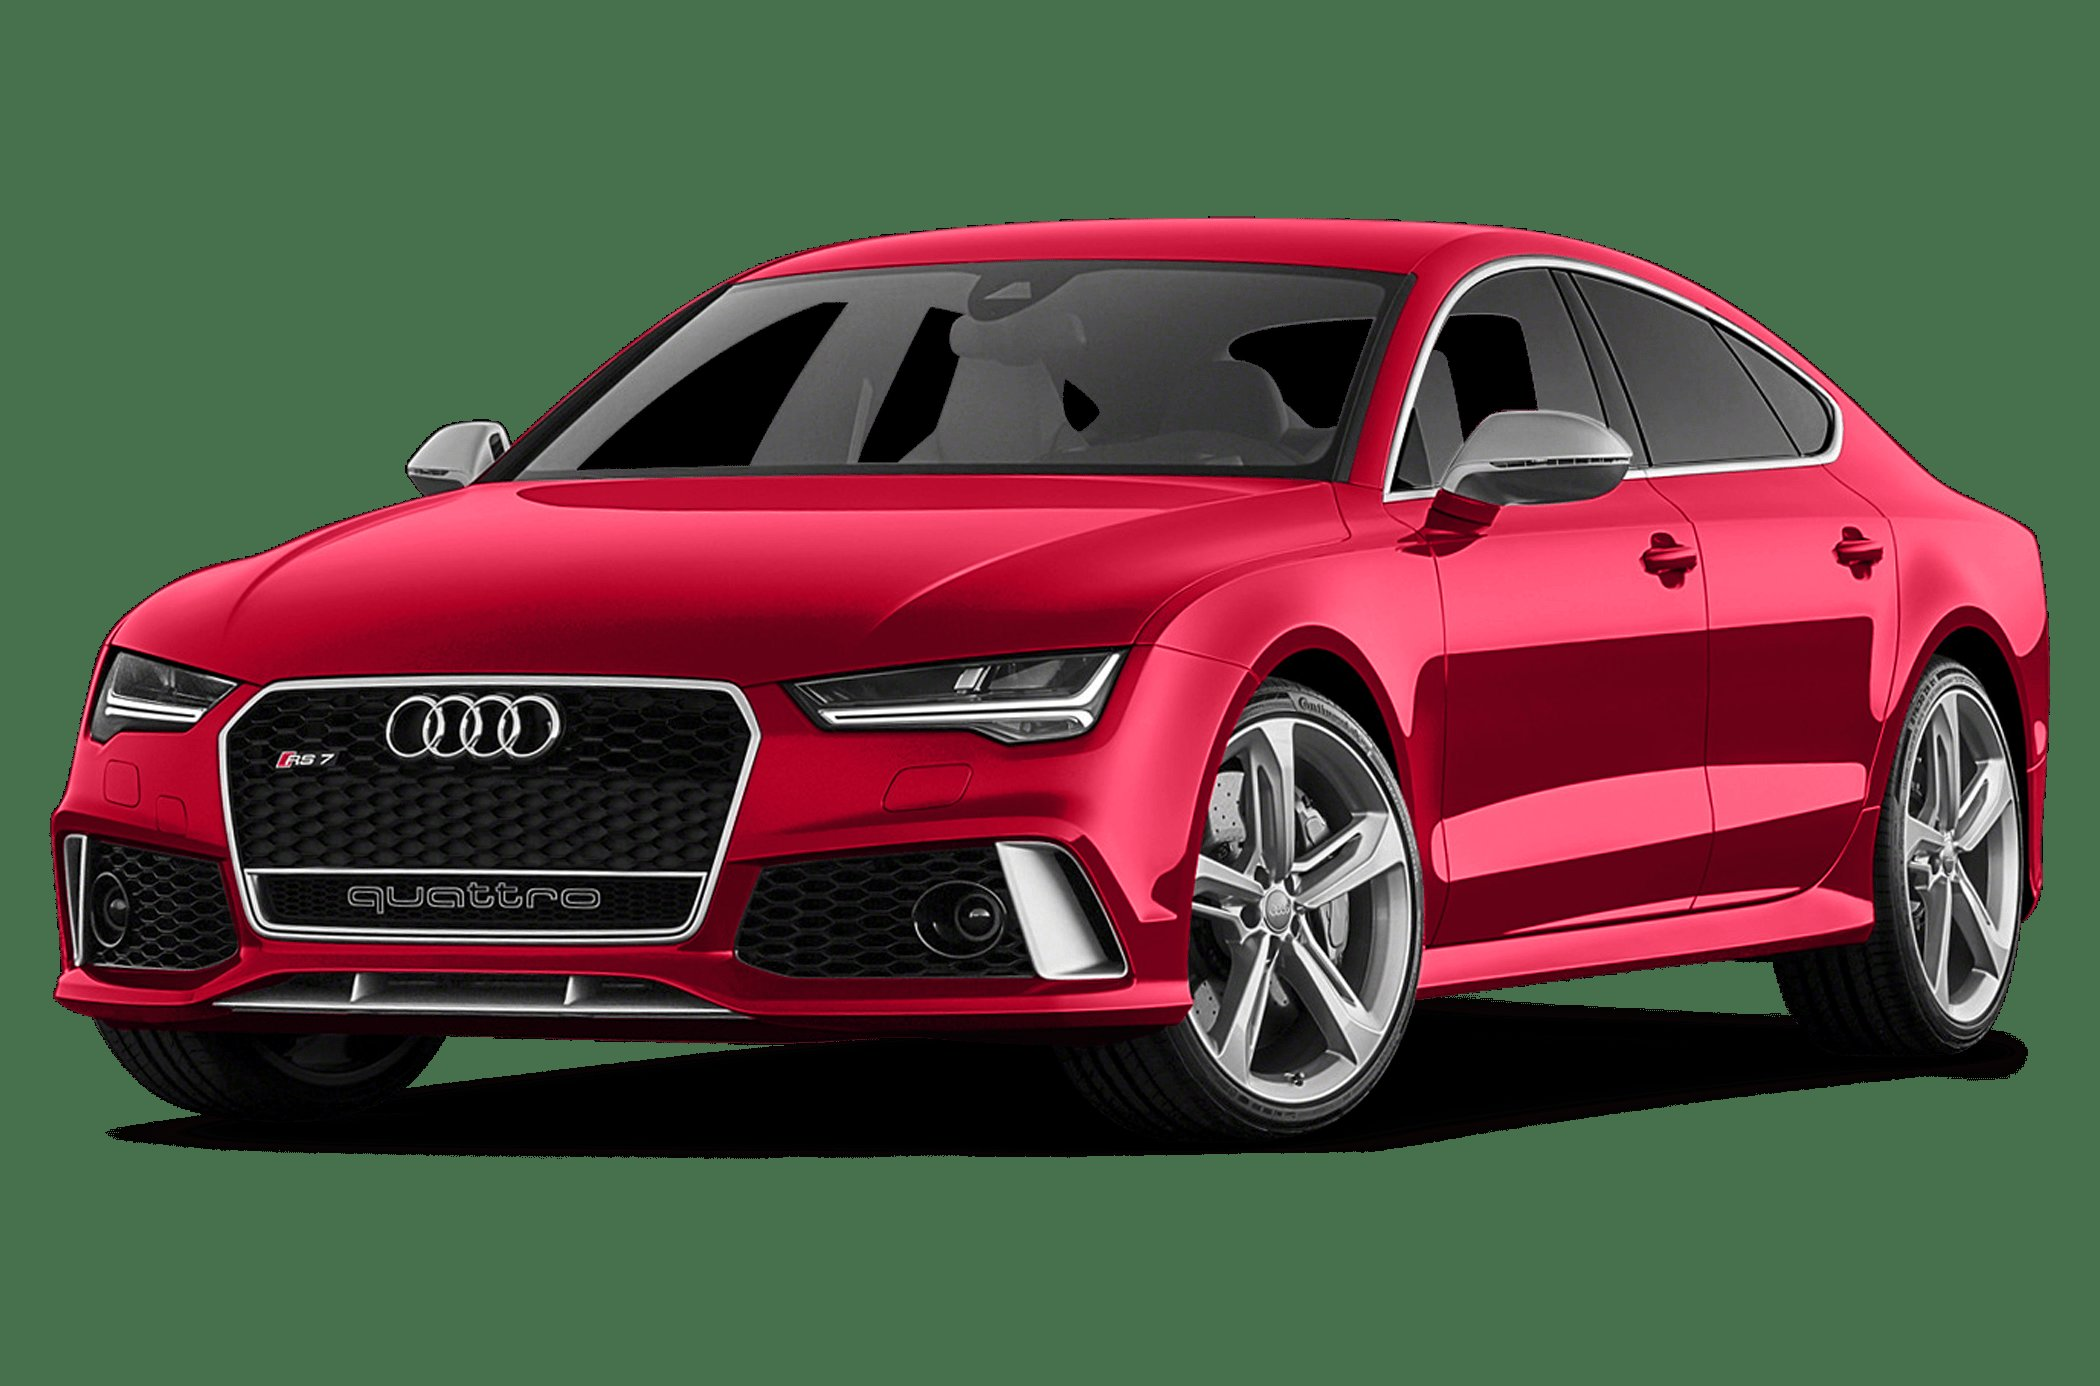 Latest 2016 Audi Rs 7 Png 45311 Free Icons And Png Backgrounds Free Download